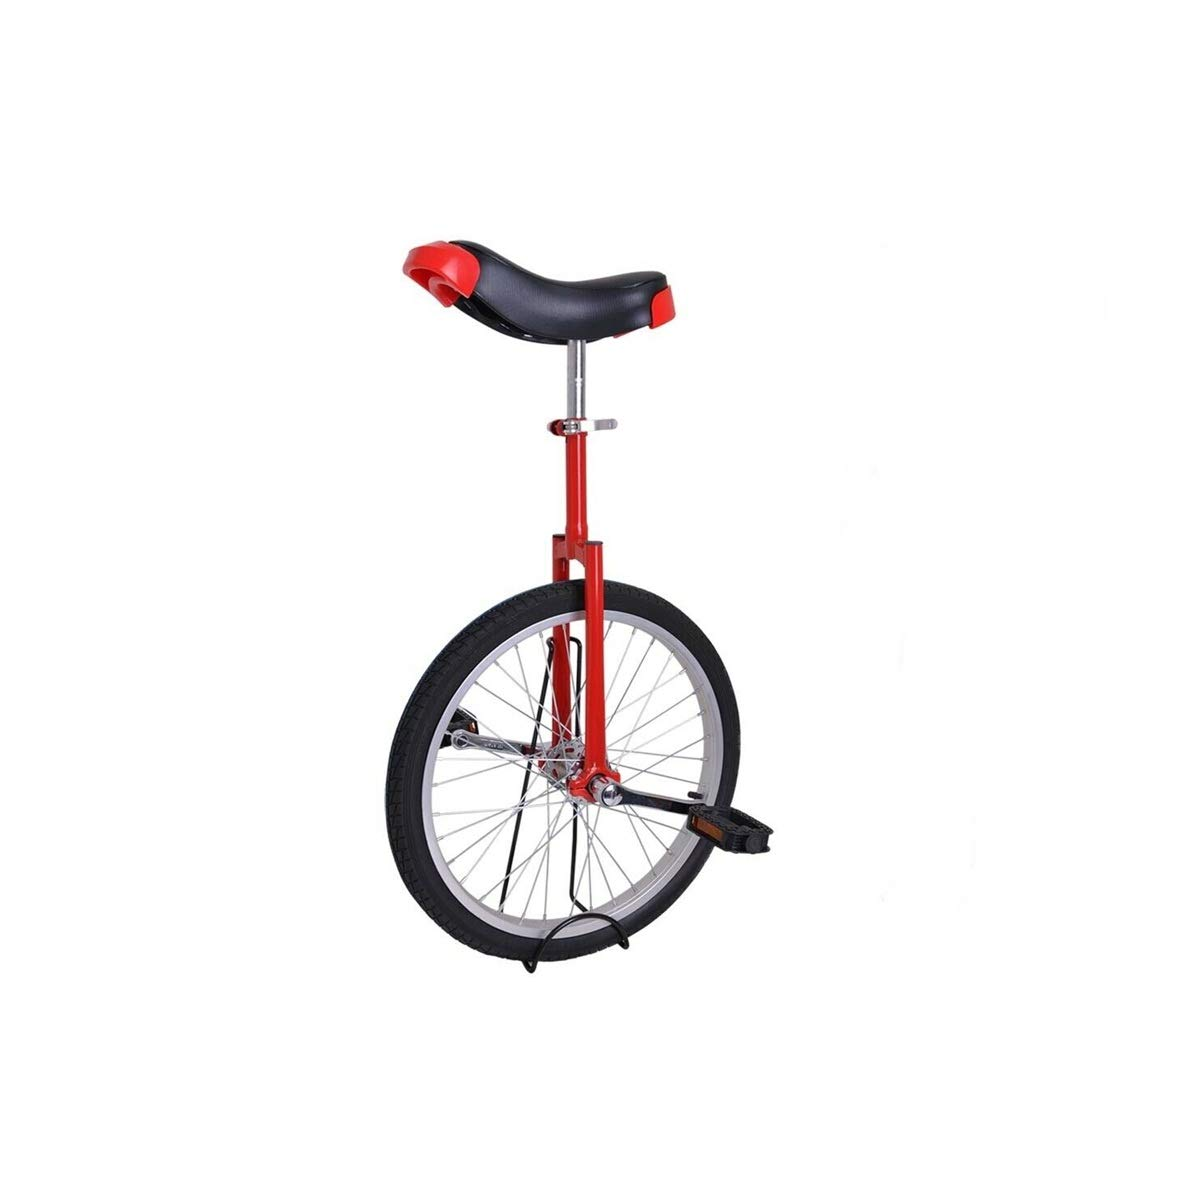 FDInspiration Red 20'' Wheel Cycling Scooter Circus Unicycle Bike Skidproof Tire Balance Exercise Large Saddle with Ebook